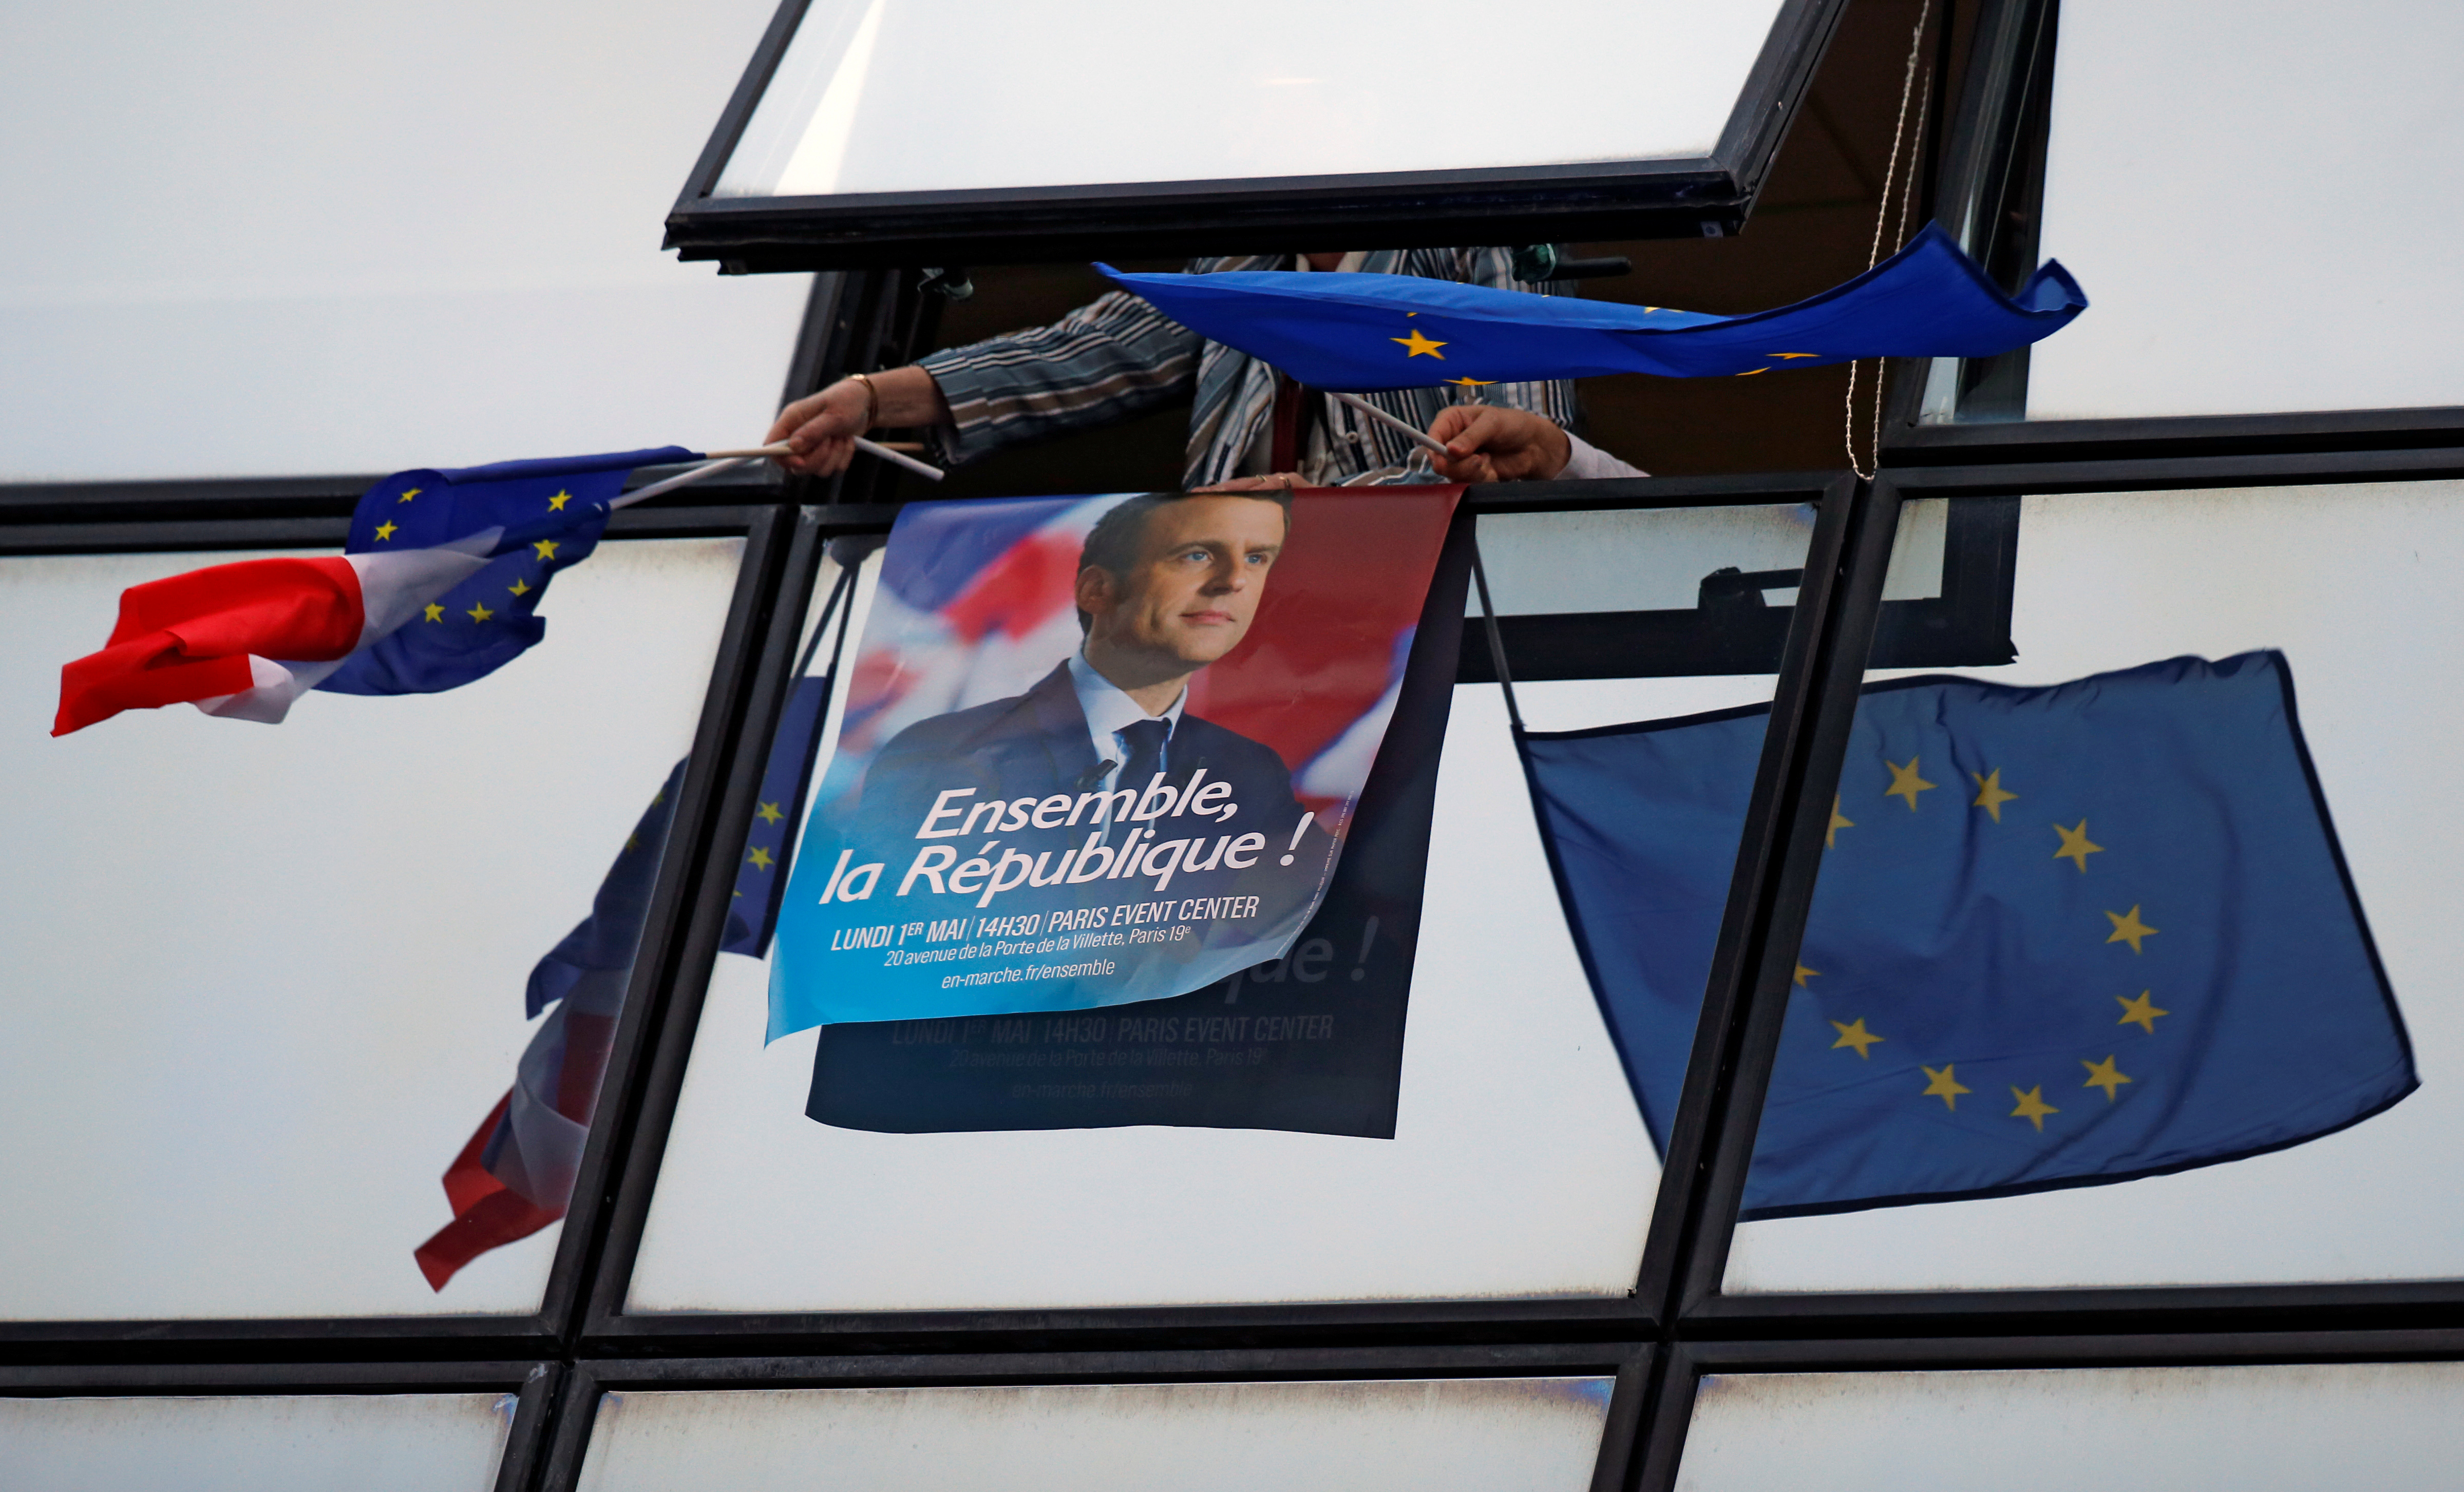 A supporter holds a campaign poster of Emmanuel Macron and European Union flags